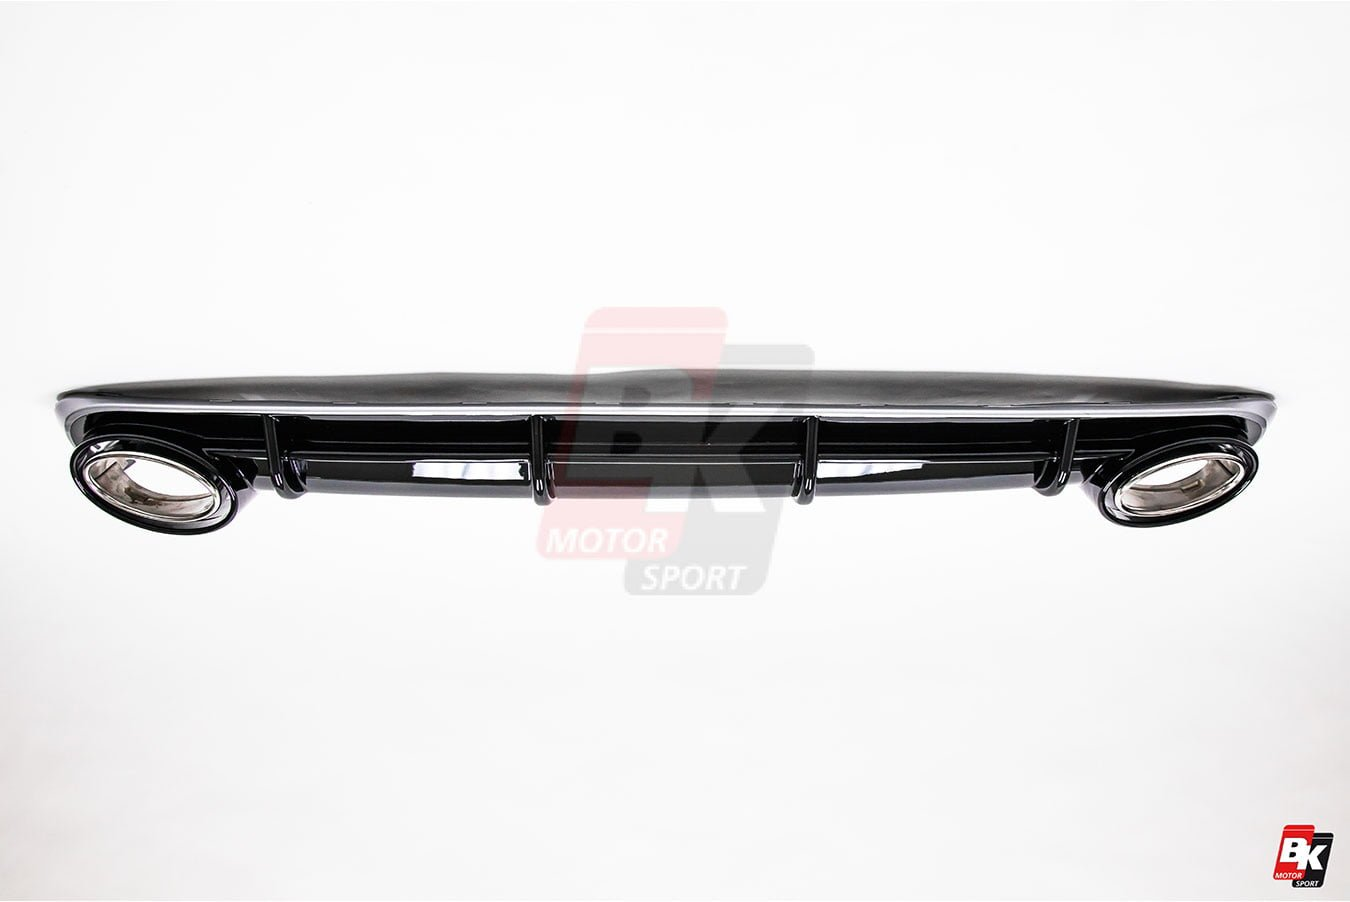 BKM Front Bumper Kit with Front Grille and Rear Diffuser (RS Style - Glossy Black), fits Audi A6/S6 C7.0